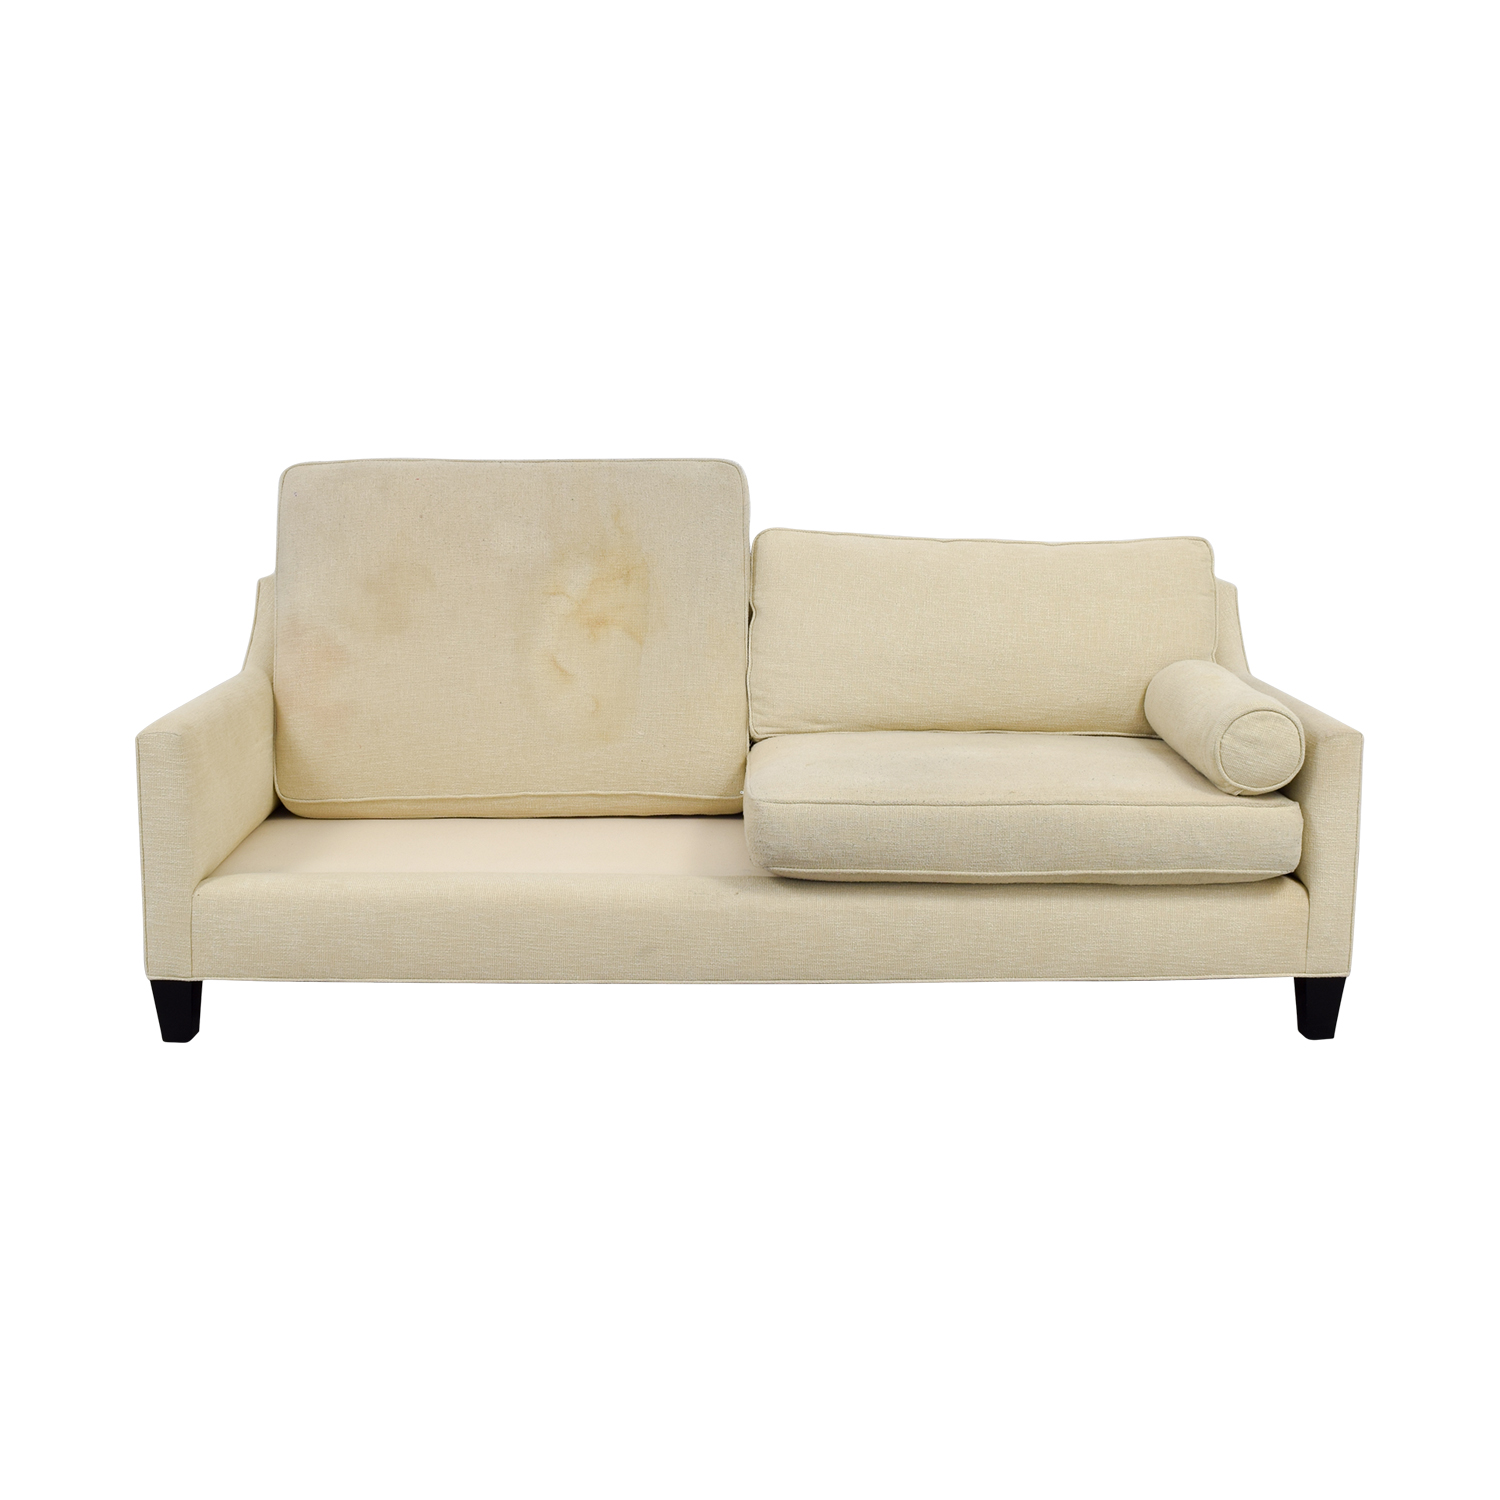 90 off bsc furniture bsc furniture beige two cushion - Beiges sofa welche wandfarbe ...